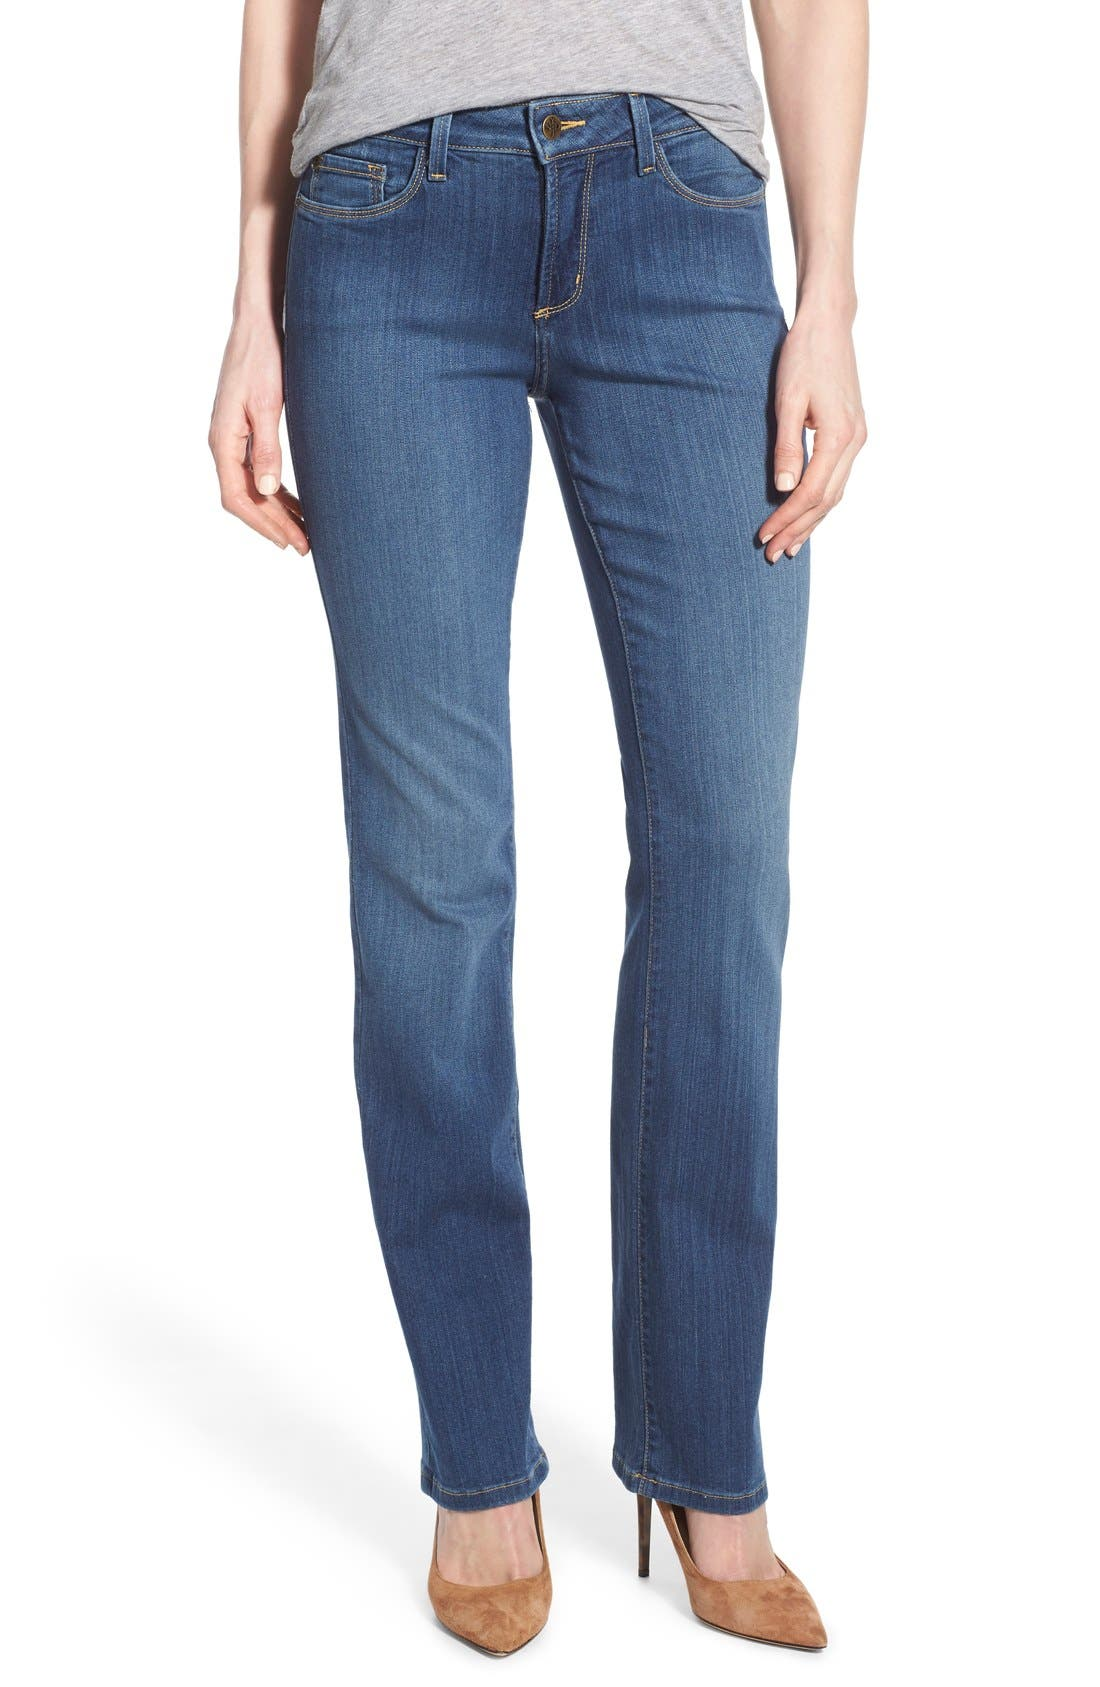 'Marilyn' Stretch Straight Leg Jeans,                         Main,                         color, 425